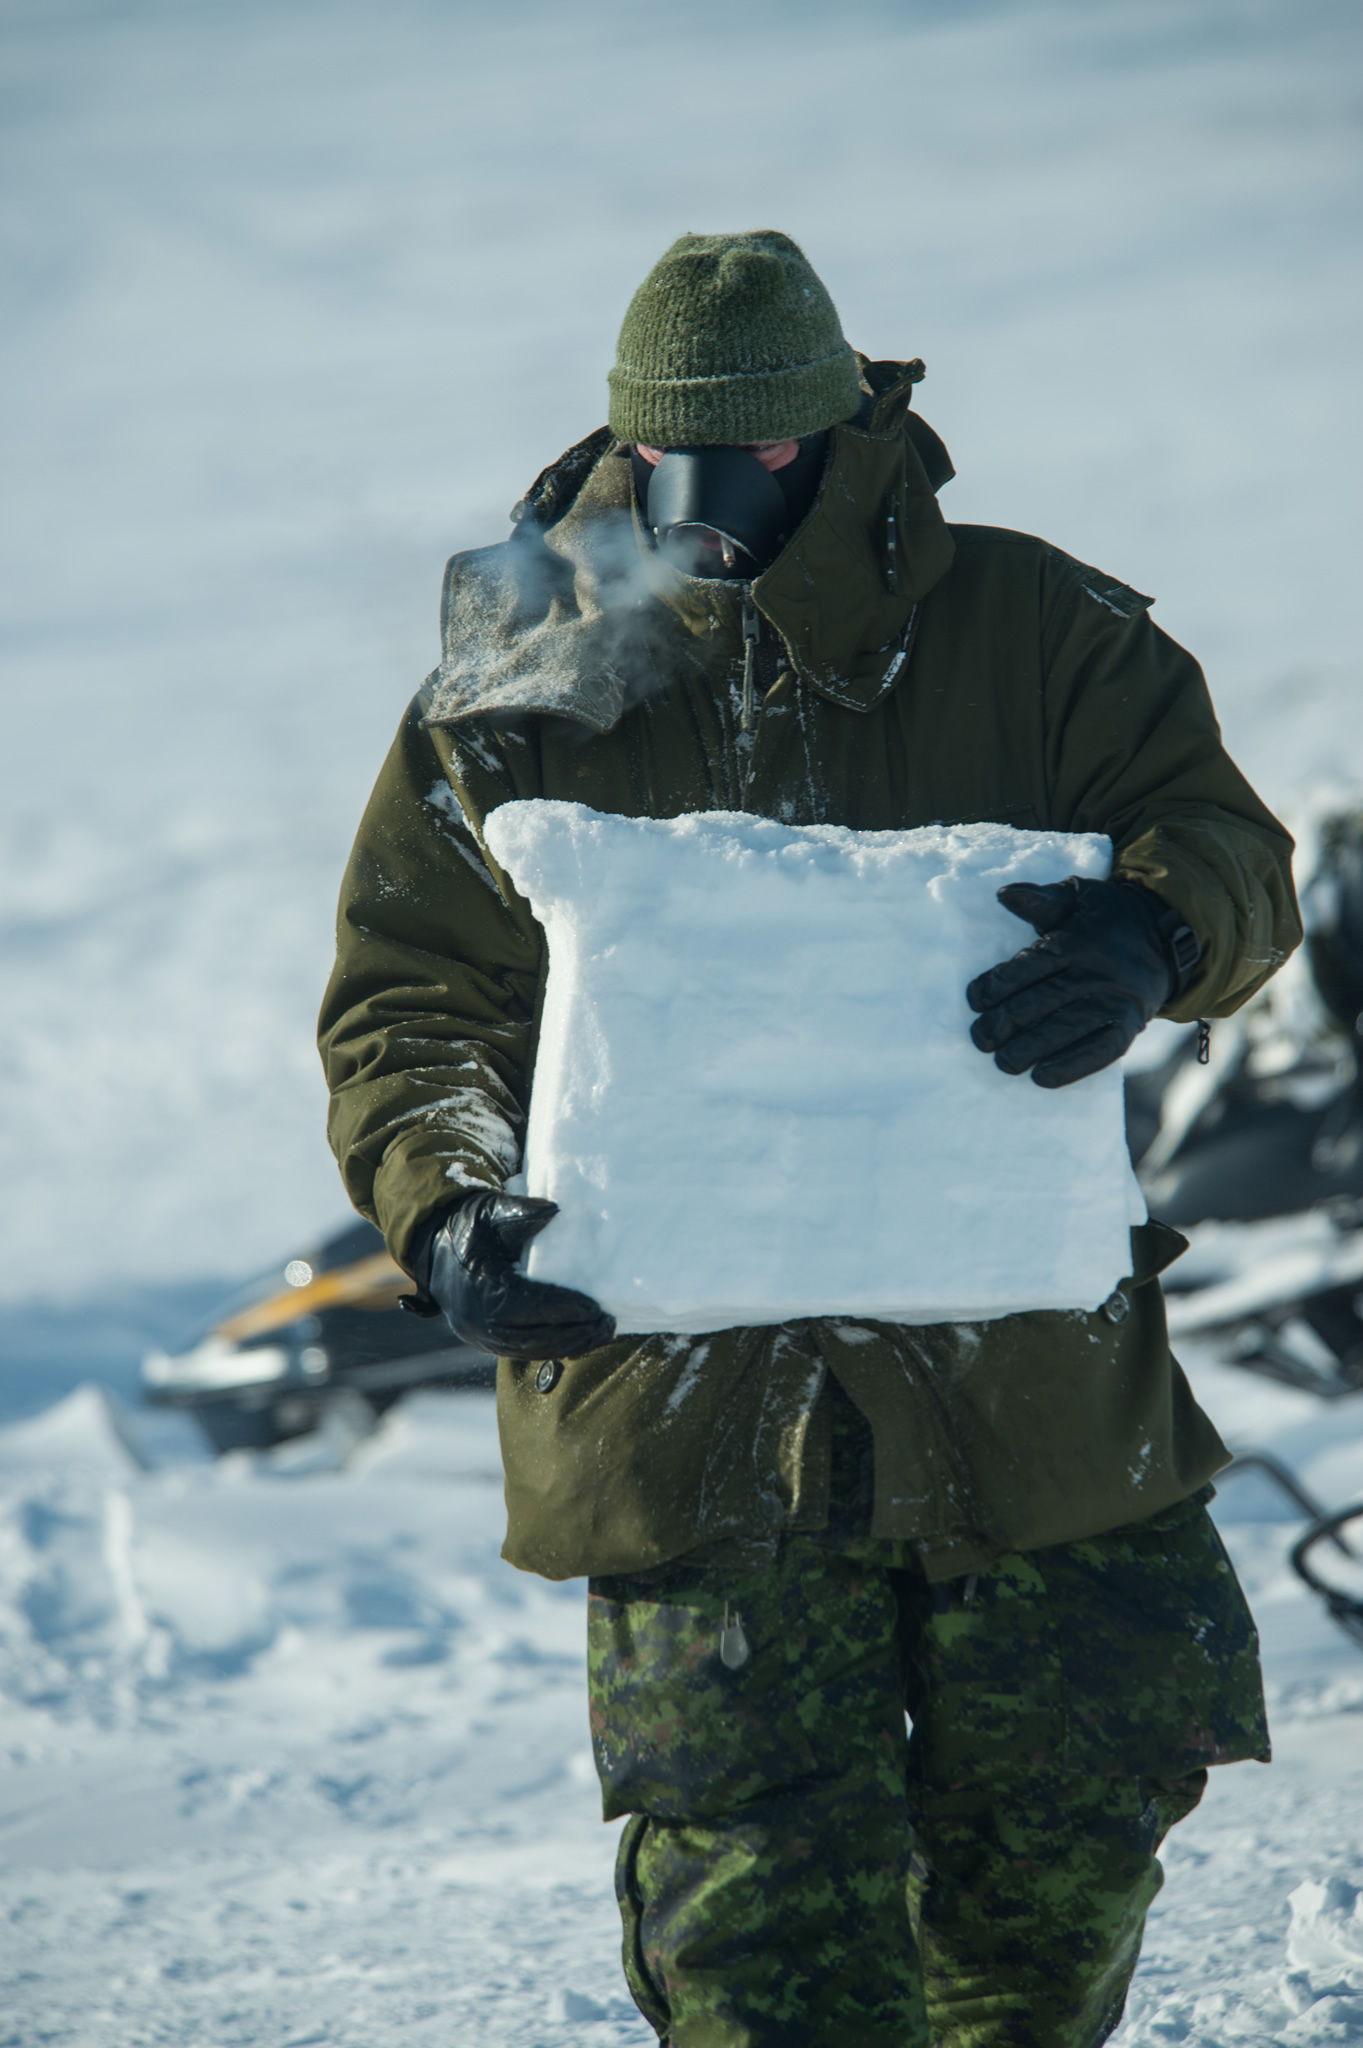 Task Force members continue to reinforce their shelters against the hostile environmental conditions at the Task Force base camp on Little Cornwallis Island, NU, during Operation NUNALIVUT, April 9, 2016.